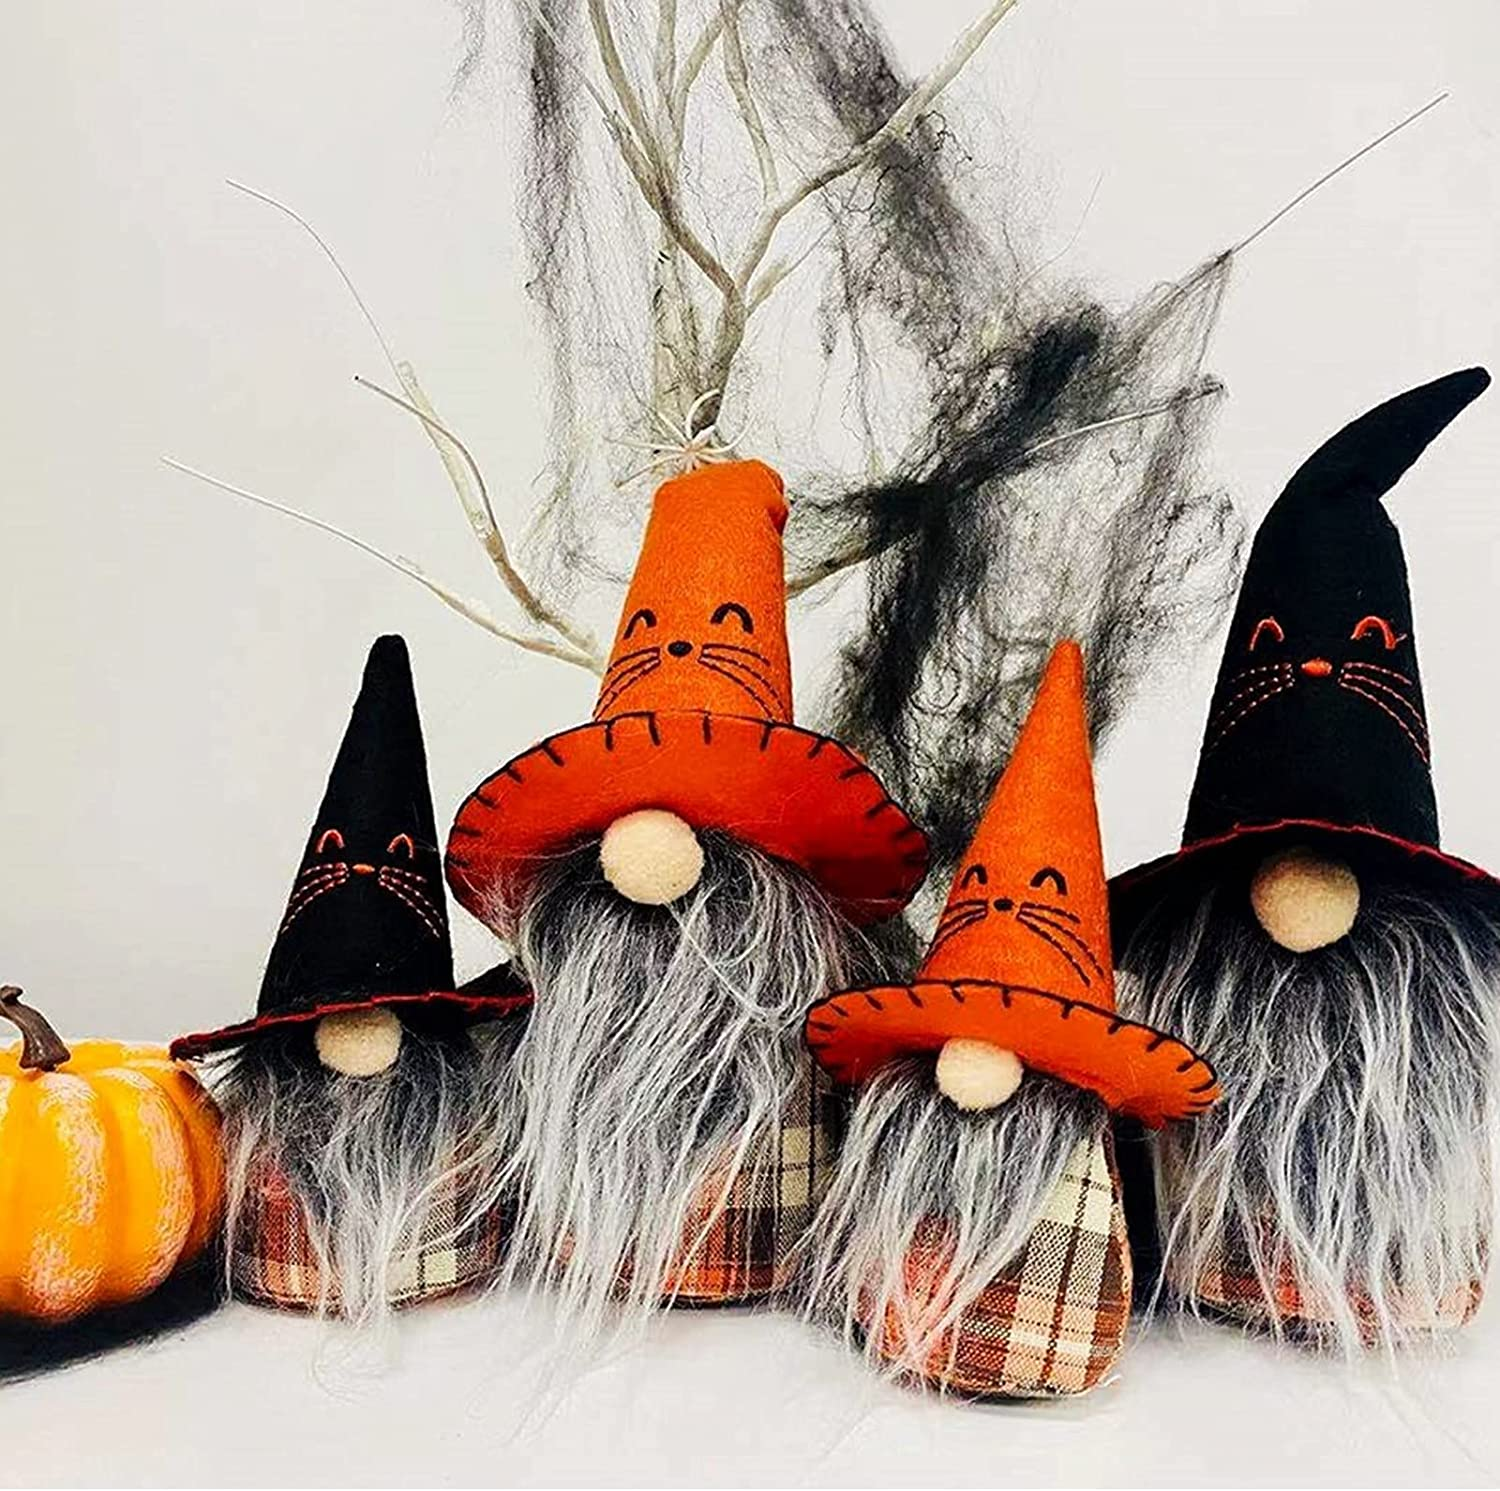 Fonder Mols Halloween Witch Gnomes Plush Decor(Pumpkin Check, 4pcs), Nordic Faceless Elf Doll w/ Cat Hat, Farmhouse Halloween Fall Thanksgiving Day Dwarf Home Household Gifts